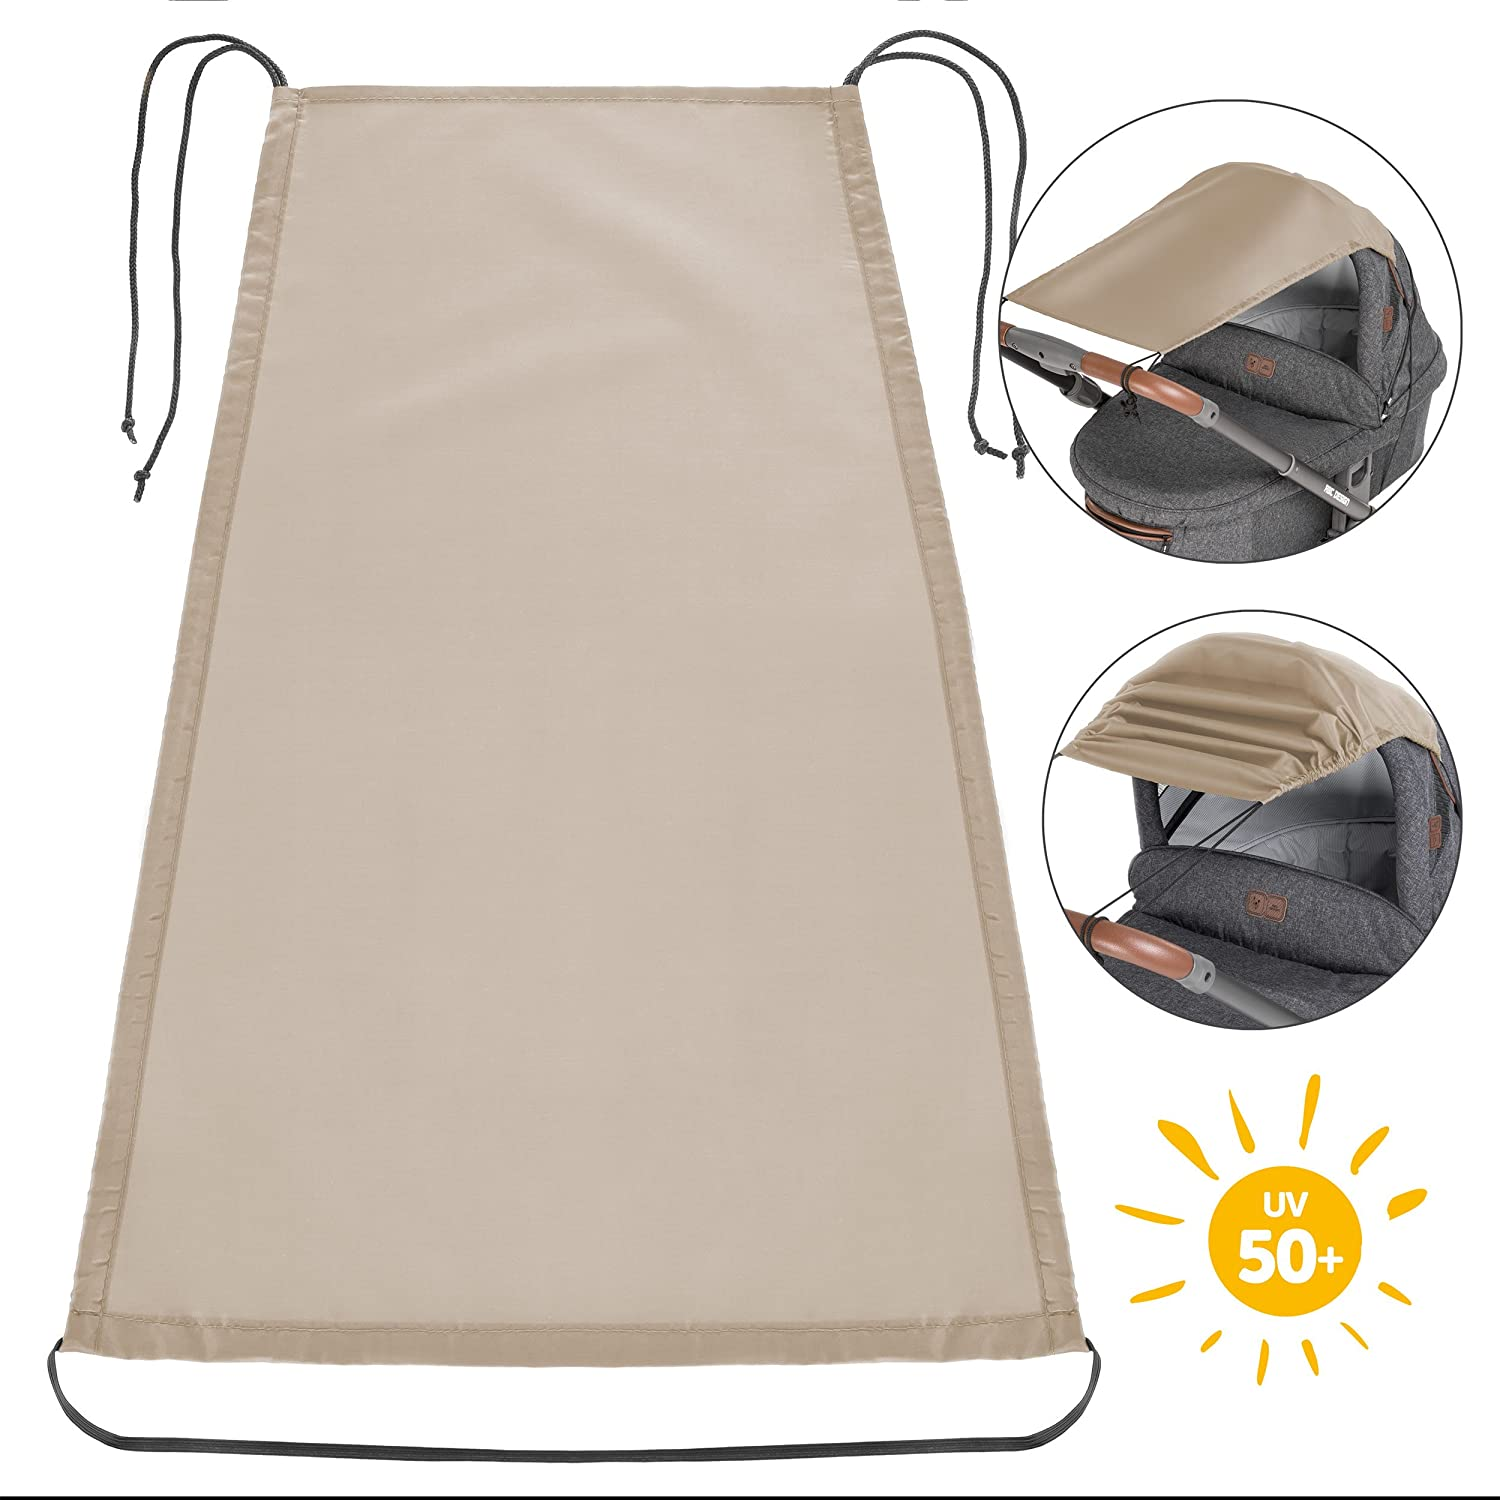 Zamboo Universal Baby Sunshade for Pram, Pushchair, Buggy and Carrycot | Stroller Sun Sail with UV Protection 50+ and up and down slide function- Beige